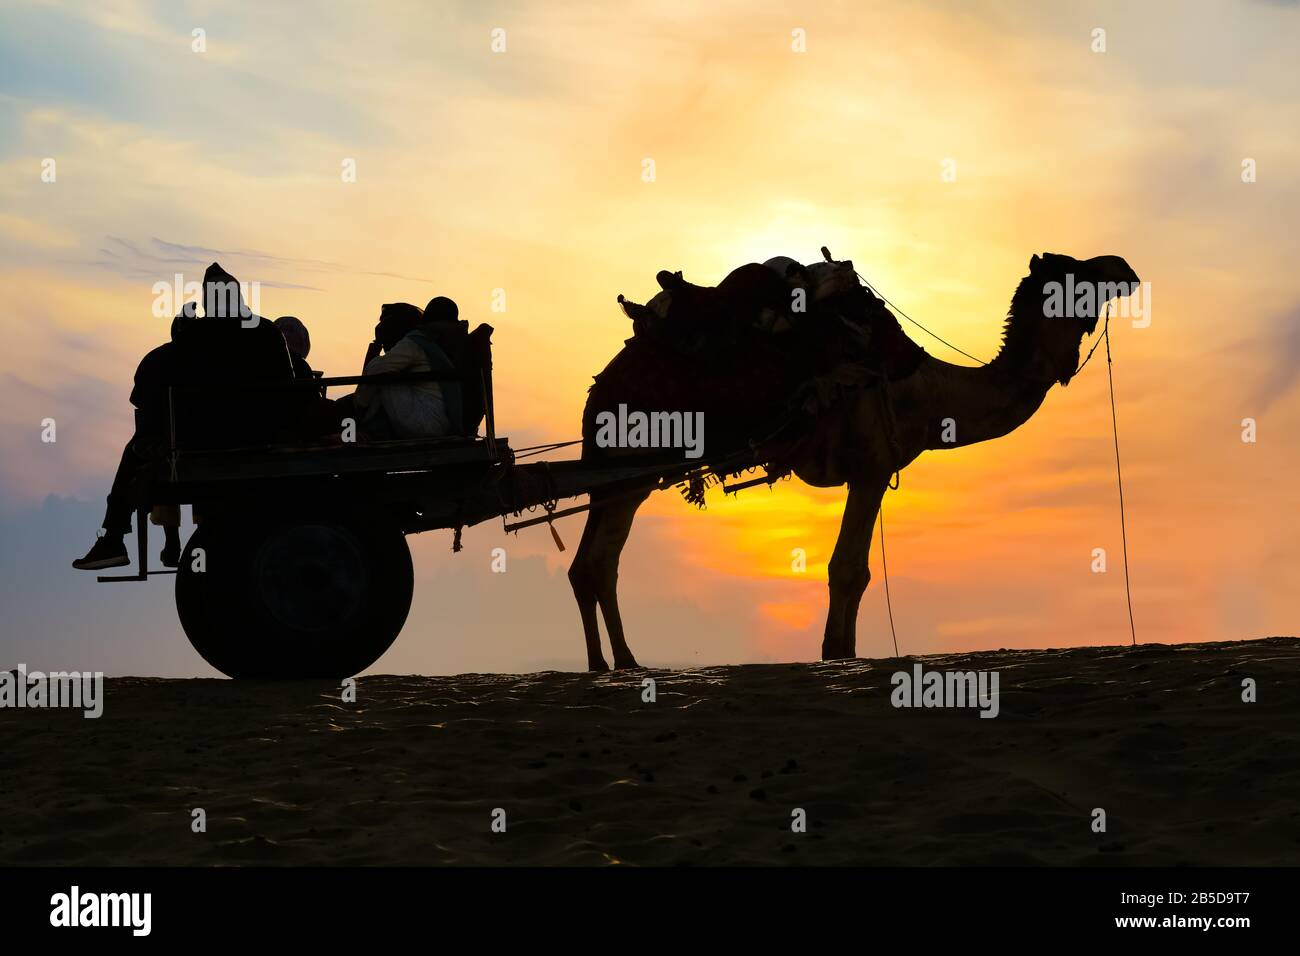 Camel cart with tourist in silhouette at sunset at Thar desert Jaisalmer Rajasthan, India Stock Photo